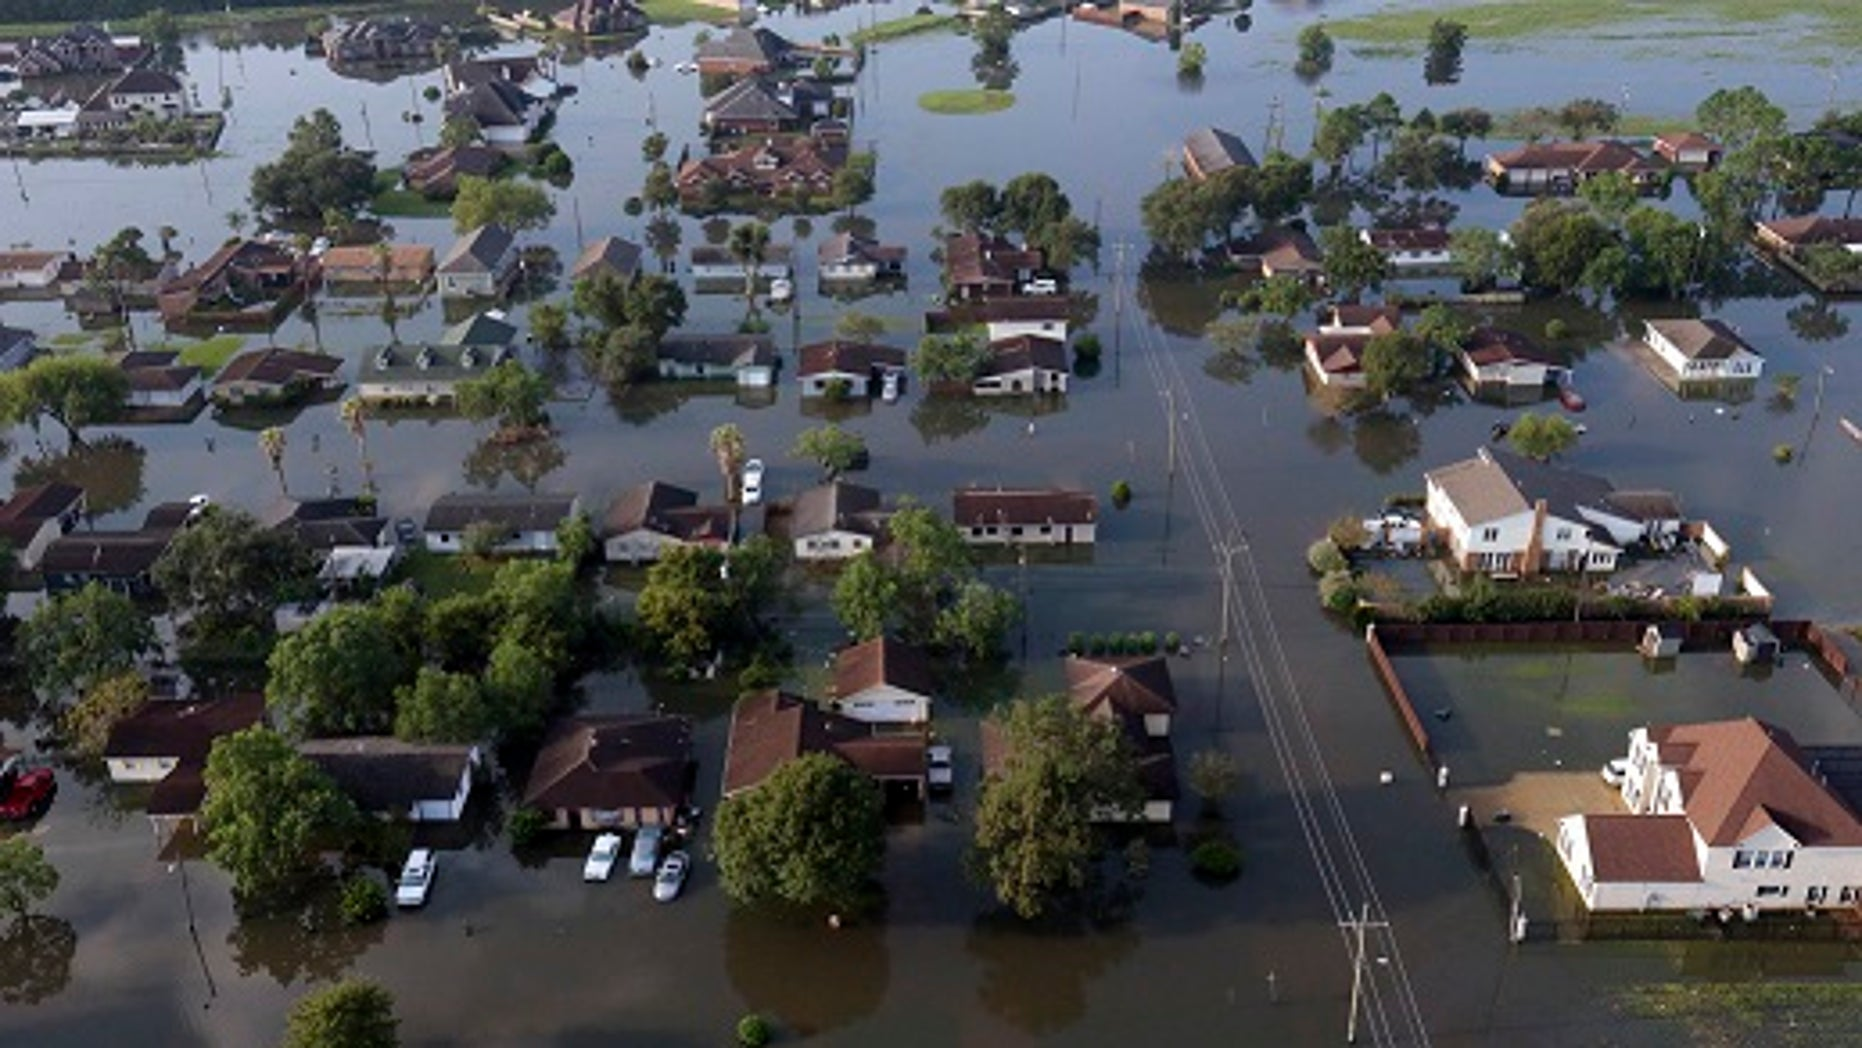 One week after Hurricane Harvey devastated parts of Texas, problems have plagued the state.